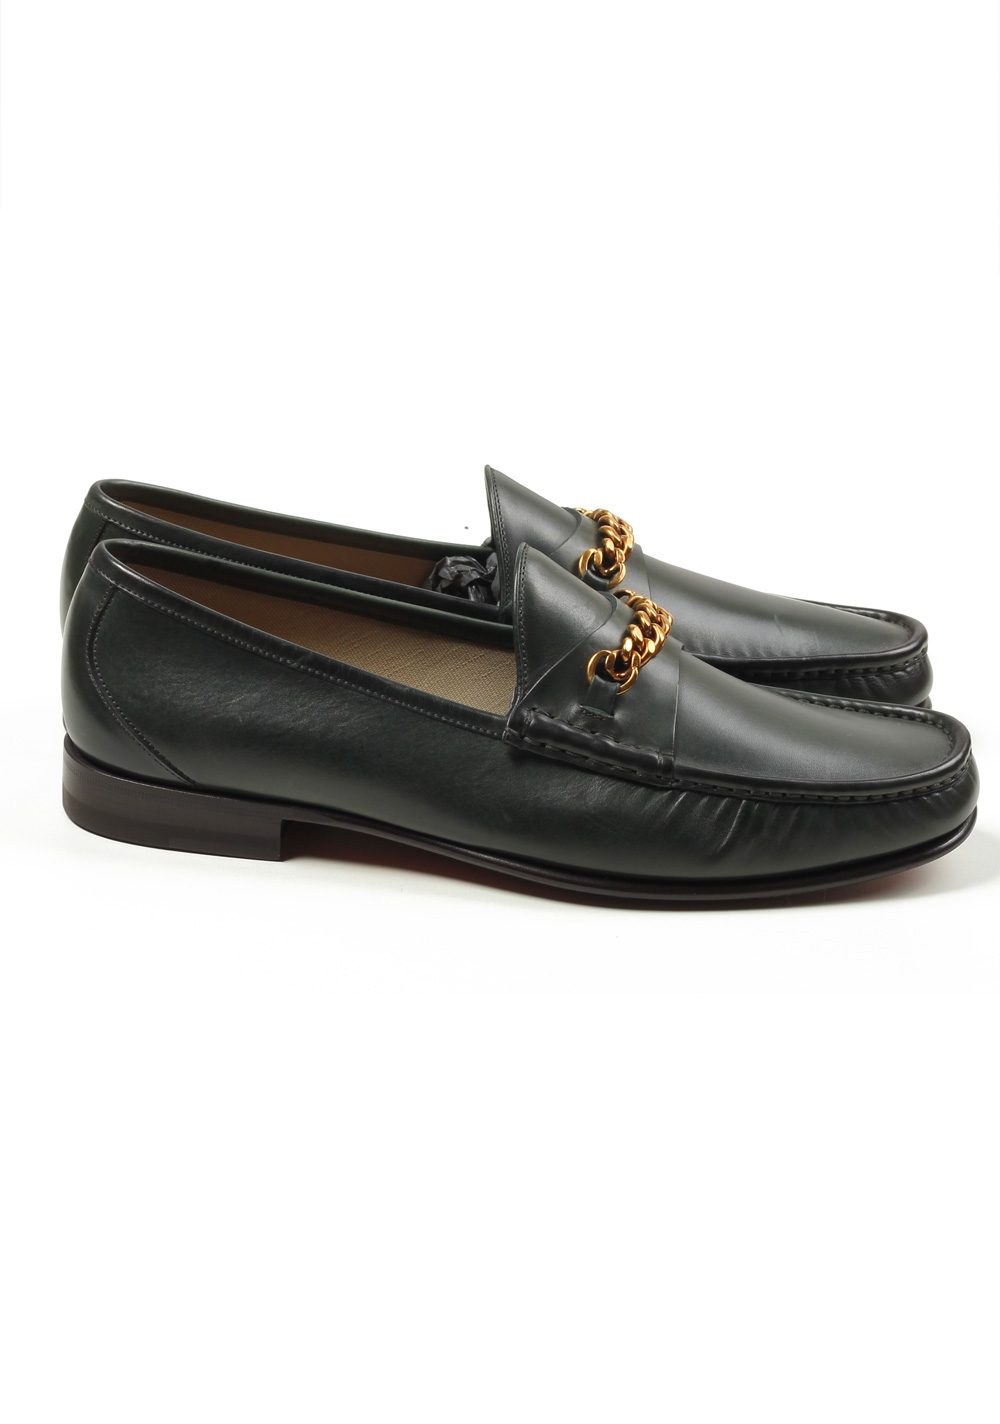 TOM FORD York Green Leather Chain Loafers Shoes Size 9,5 UK / 10,5 U.S.   Costume Limité